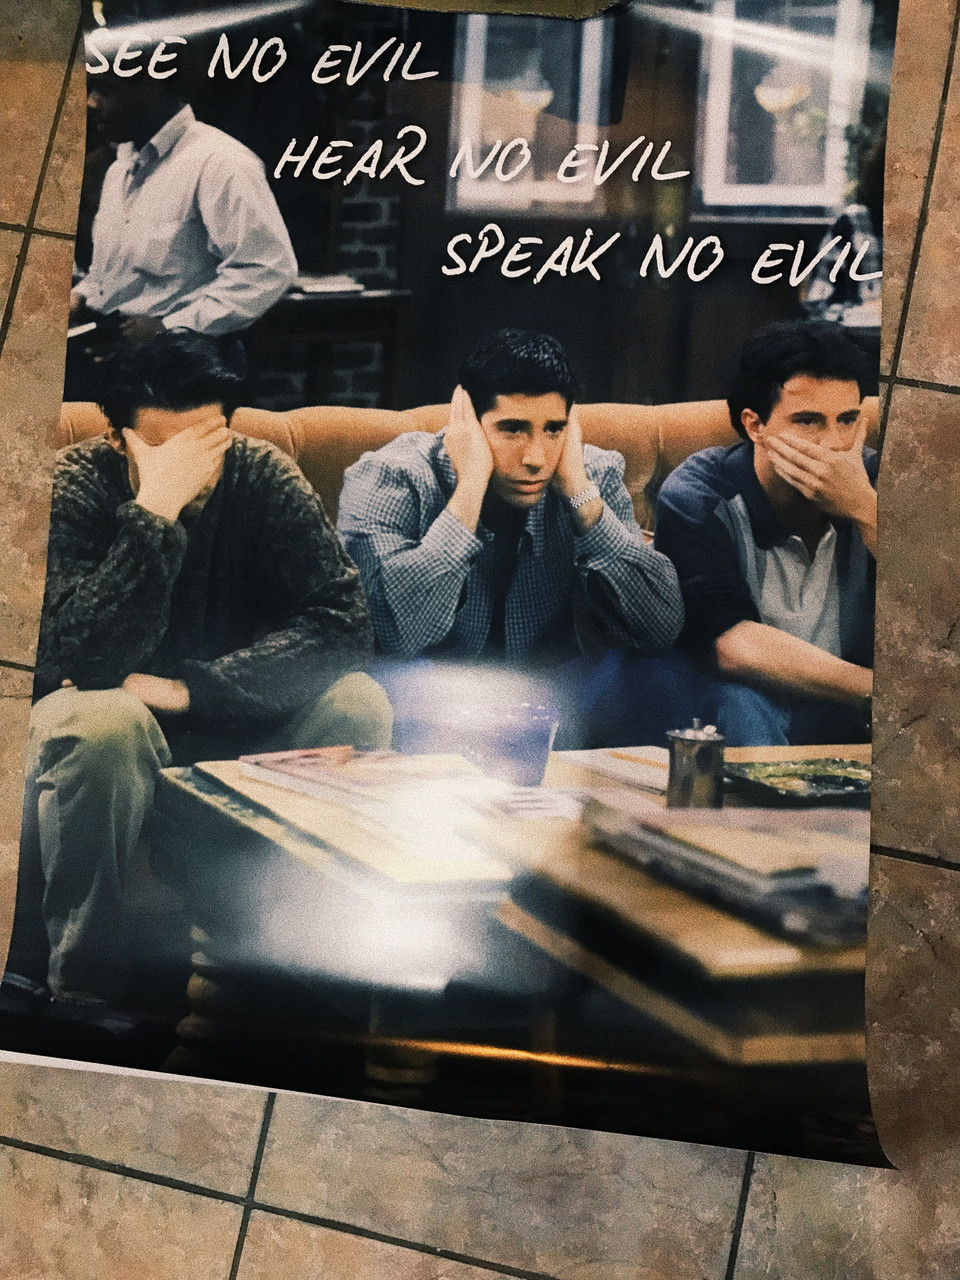 Friends Chandler Joey Ross See No Evil Kiss Canvas Or Poster Funny Unique Wall Art Home Decor Tv Show Sitcom Fan Christmas Present